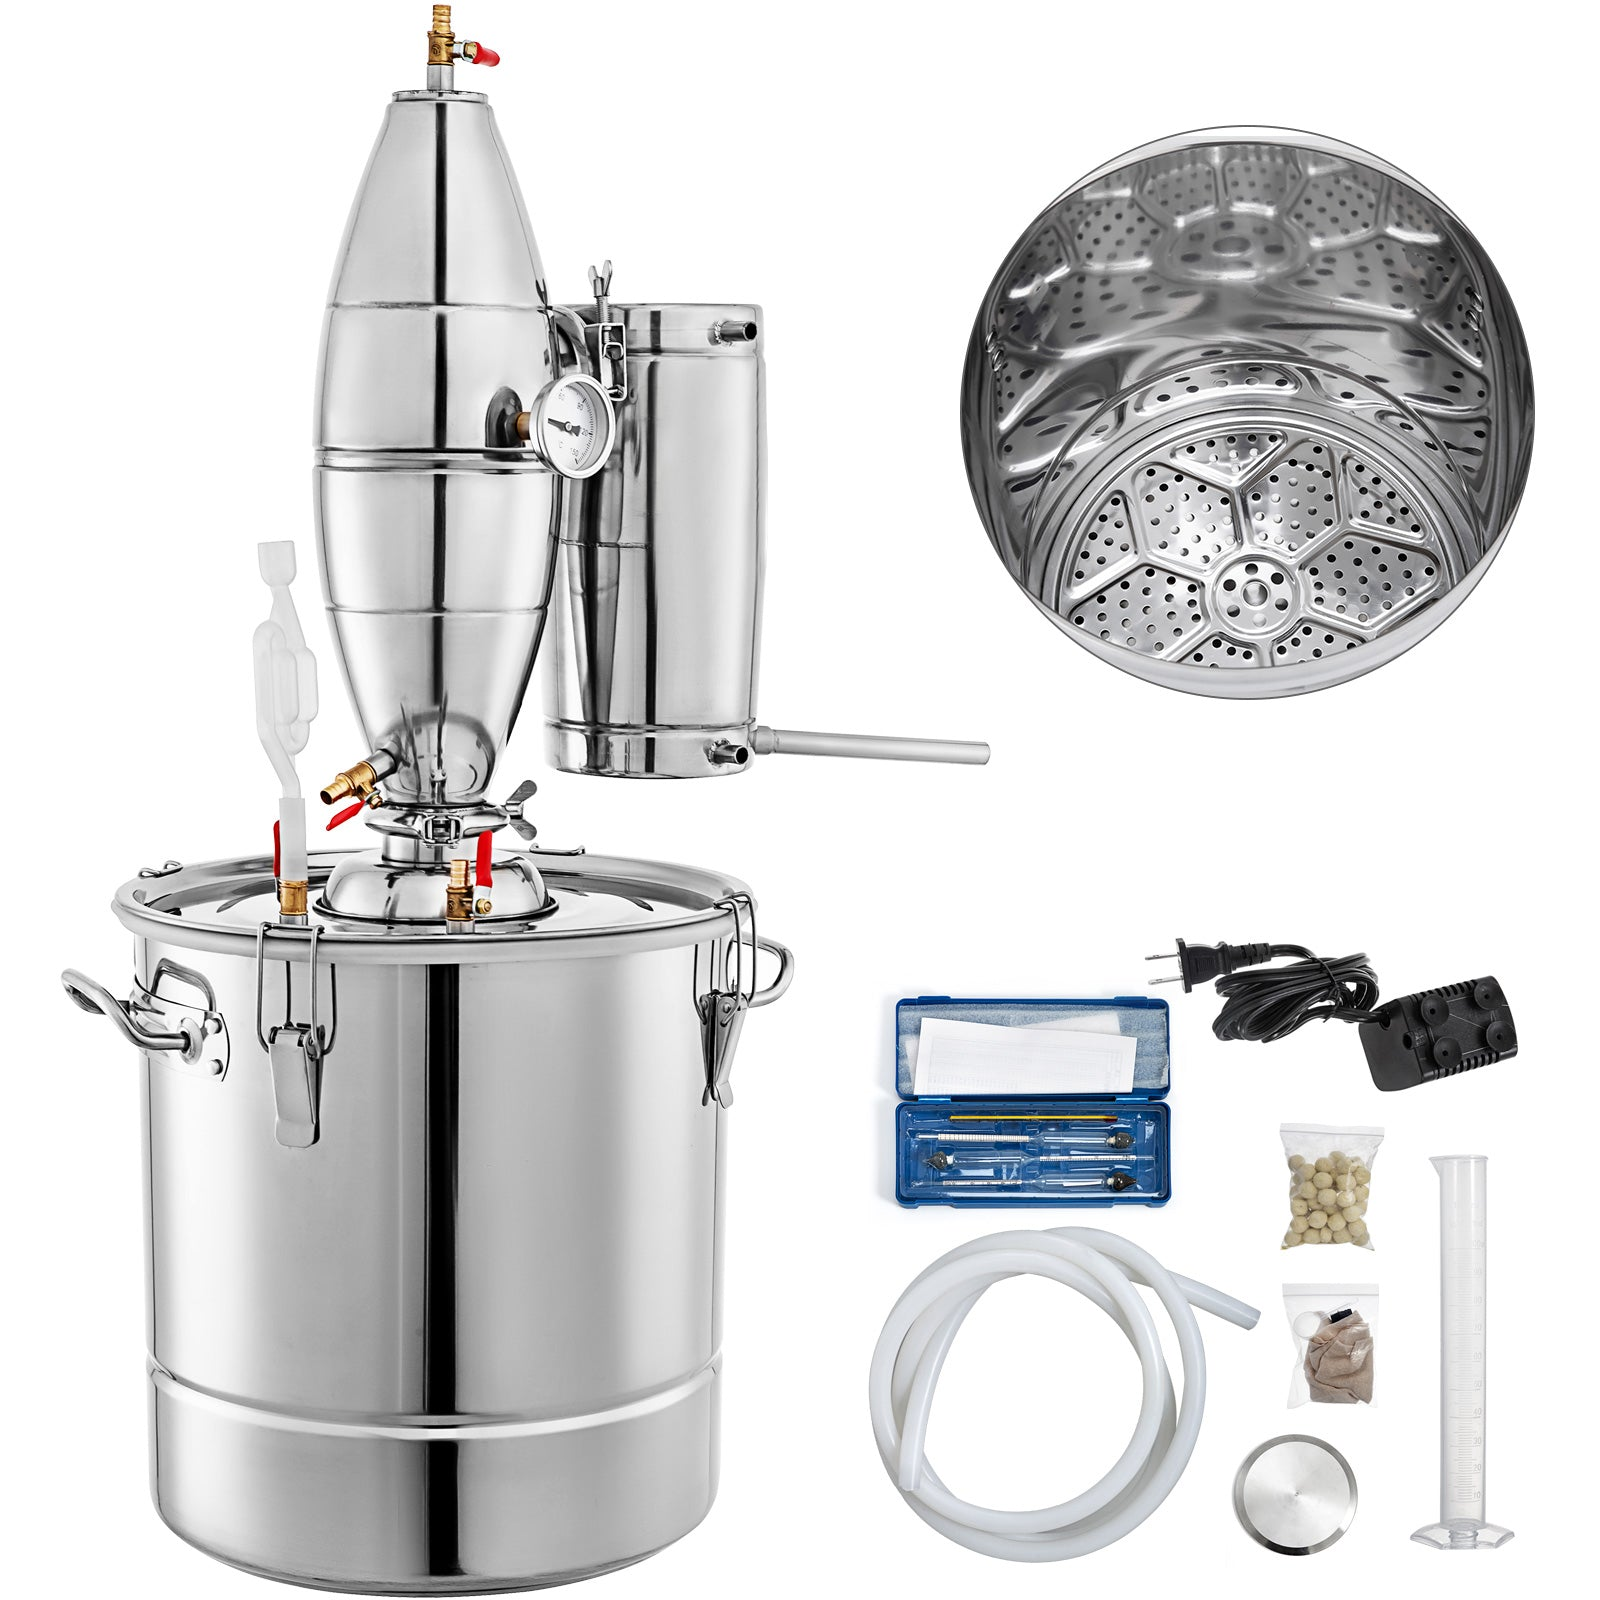 Wine Boiler Water Distiller 18gallon 70l Moonshine Still For Wine Maker